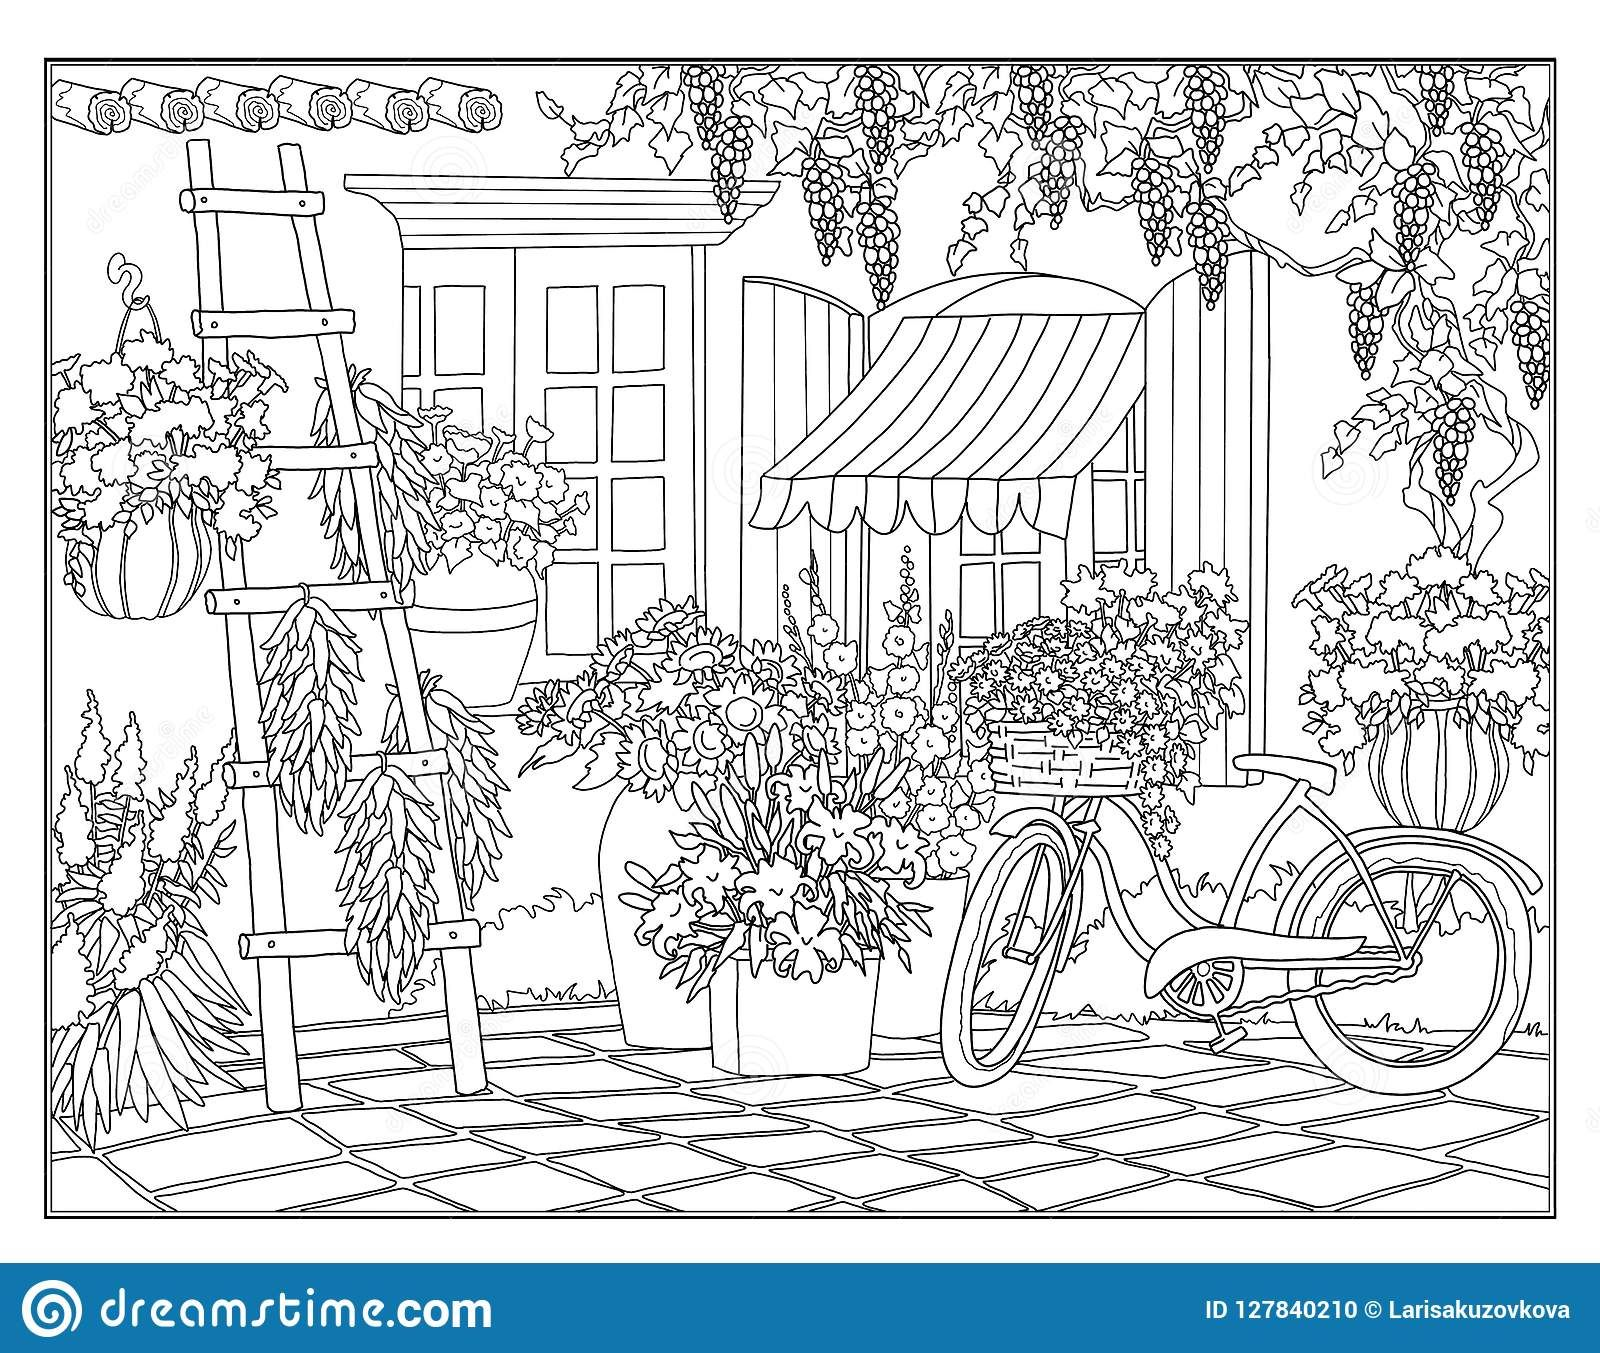 Pin By Larinda Trimble On Coloring Pages